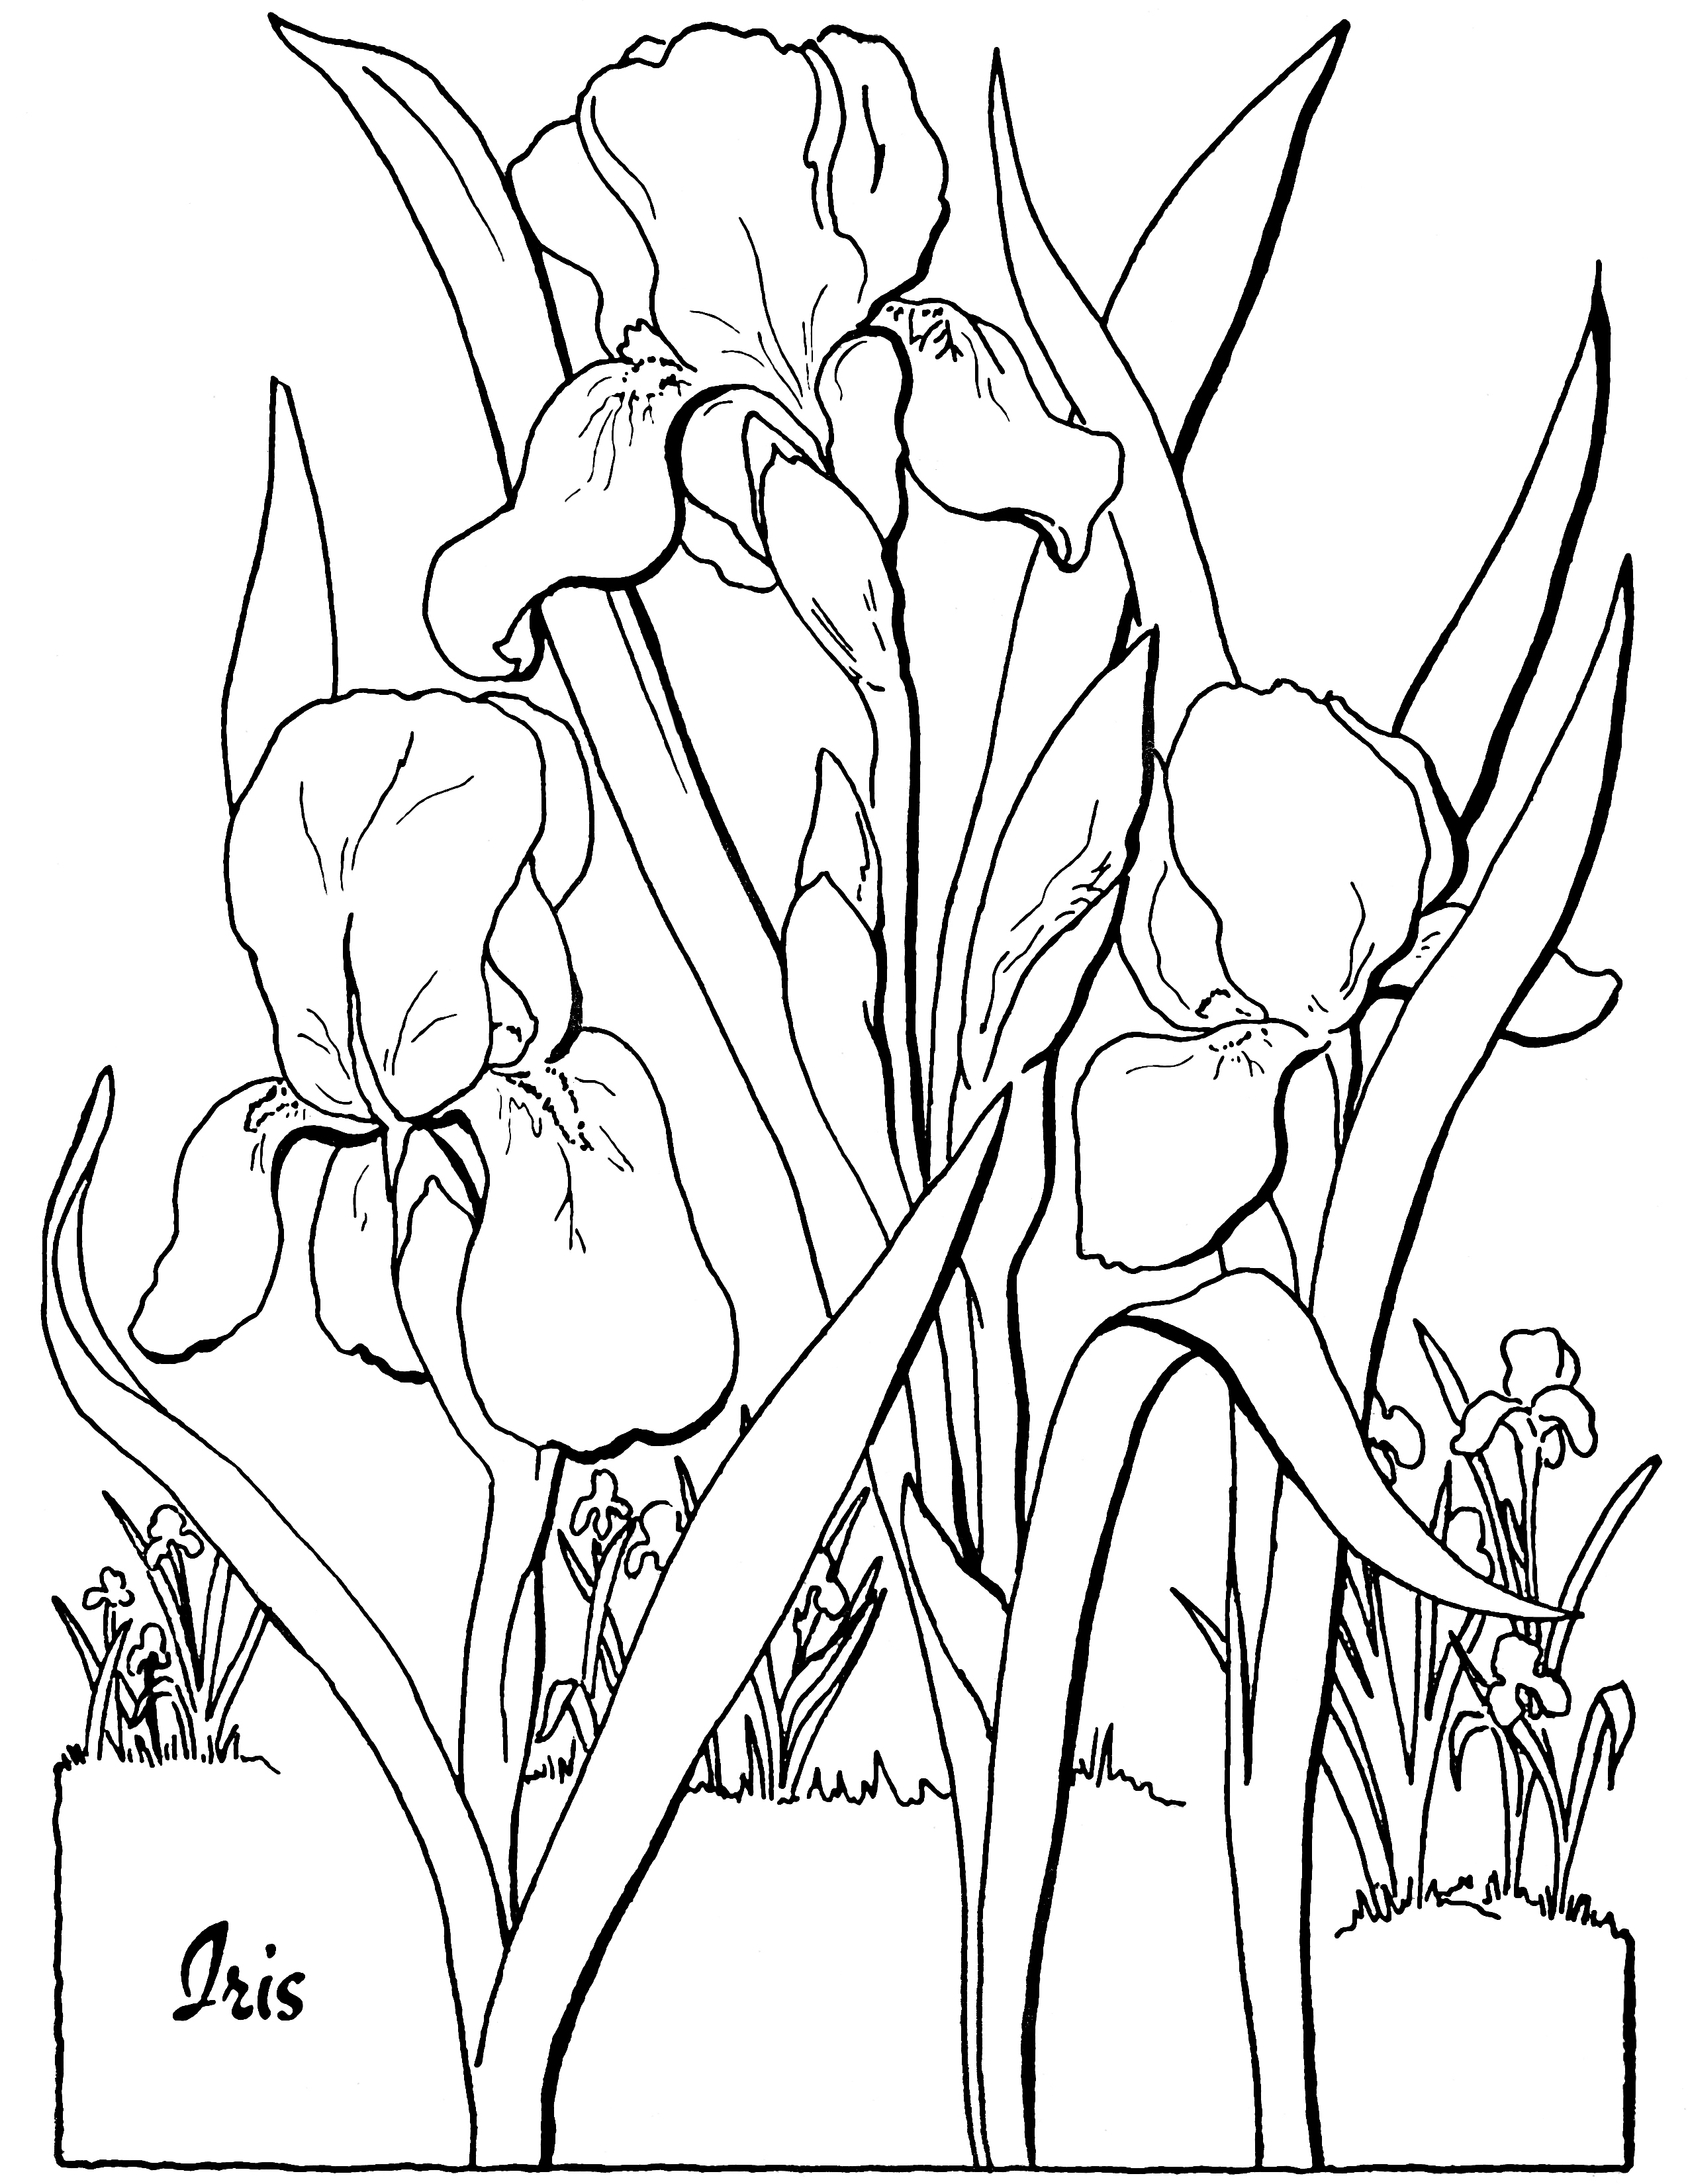 free flower coloring pages for adults flower coloring pages for adults best coloring pages for adults free pages flower coloring for